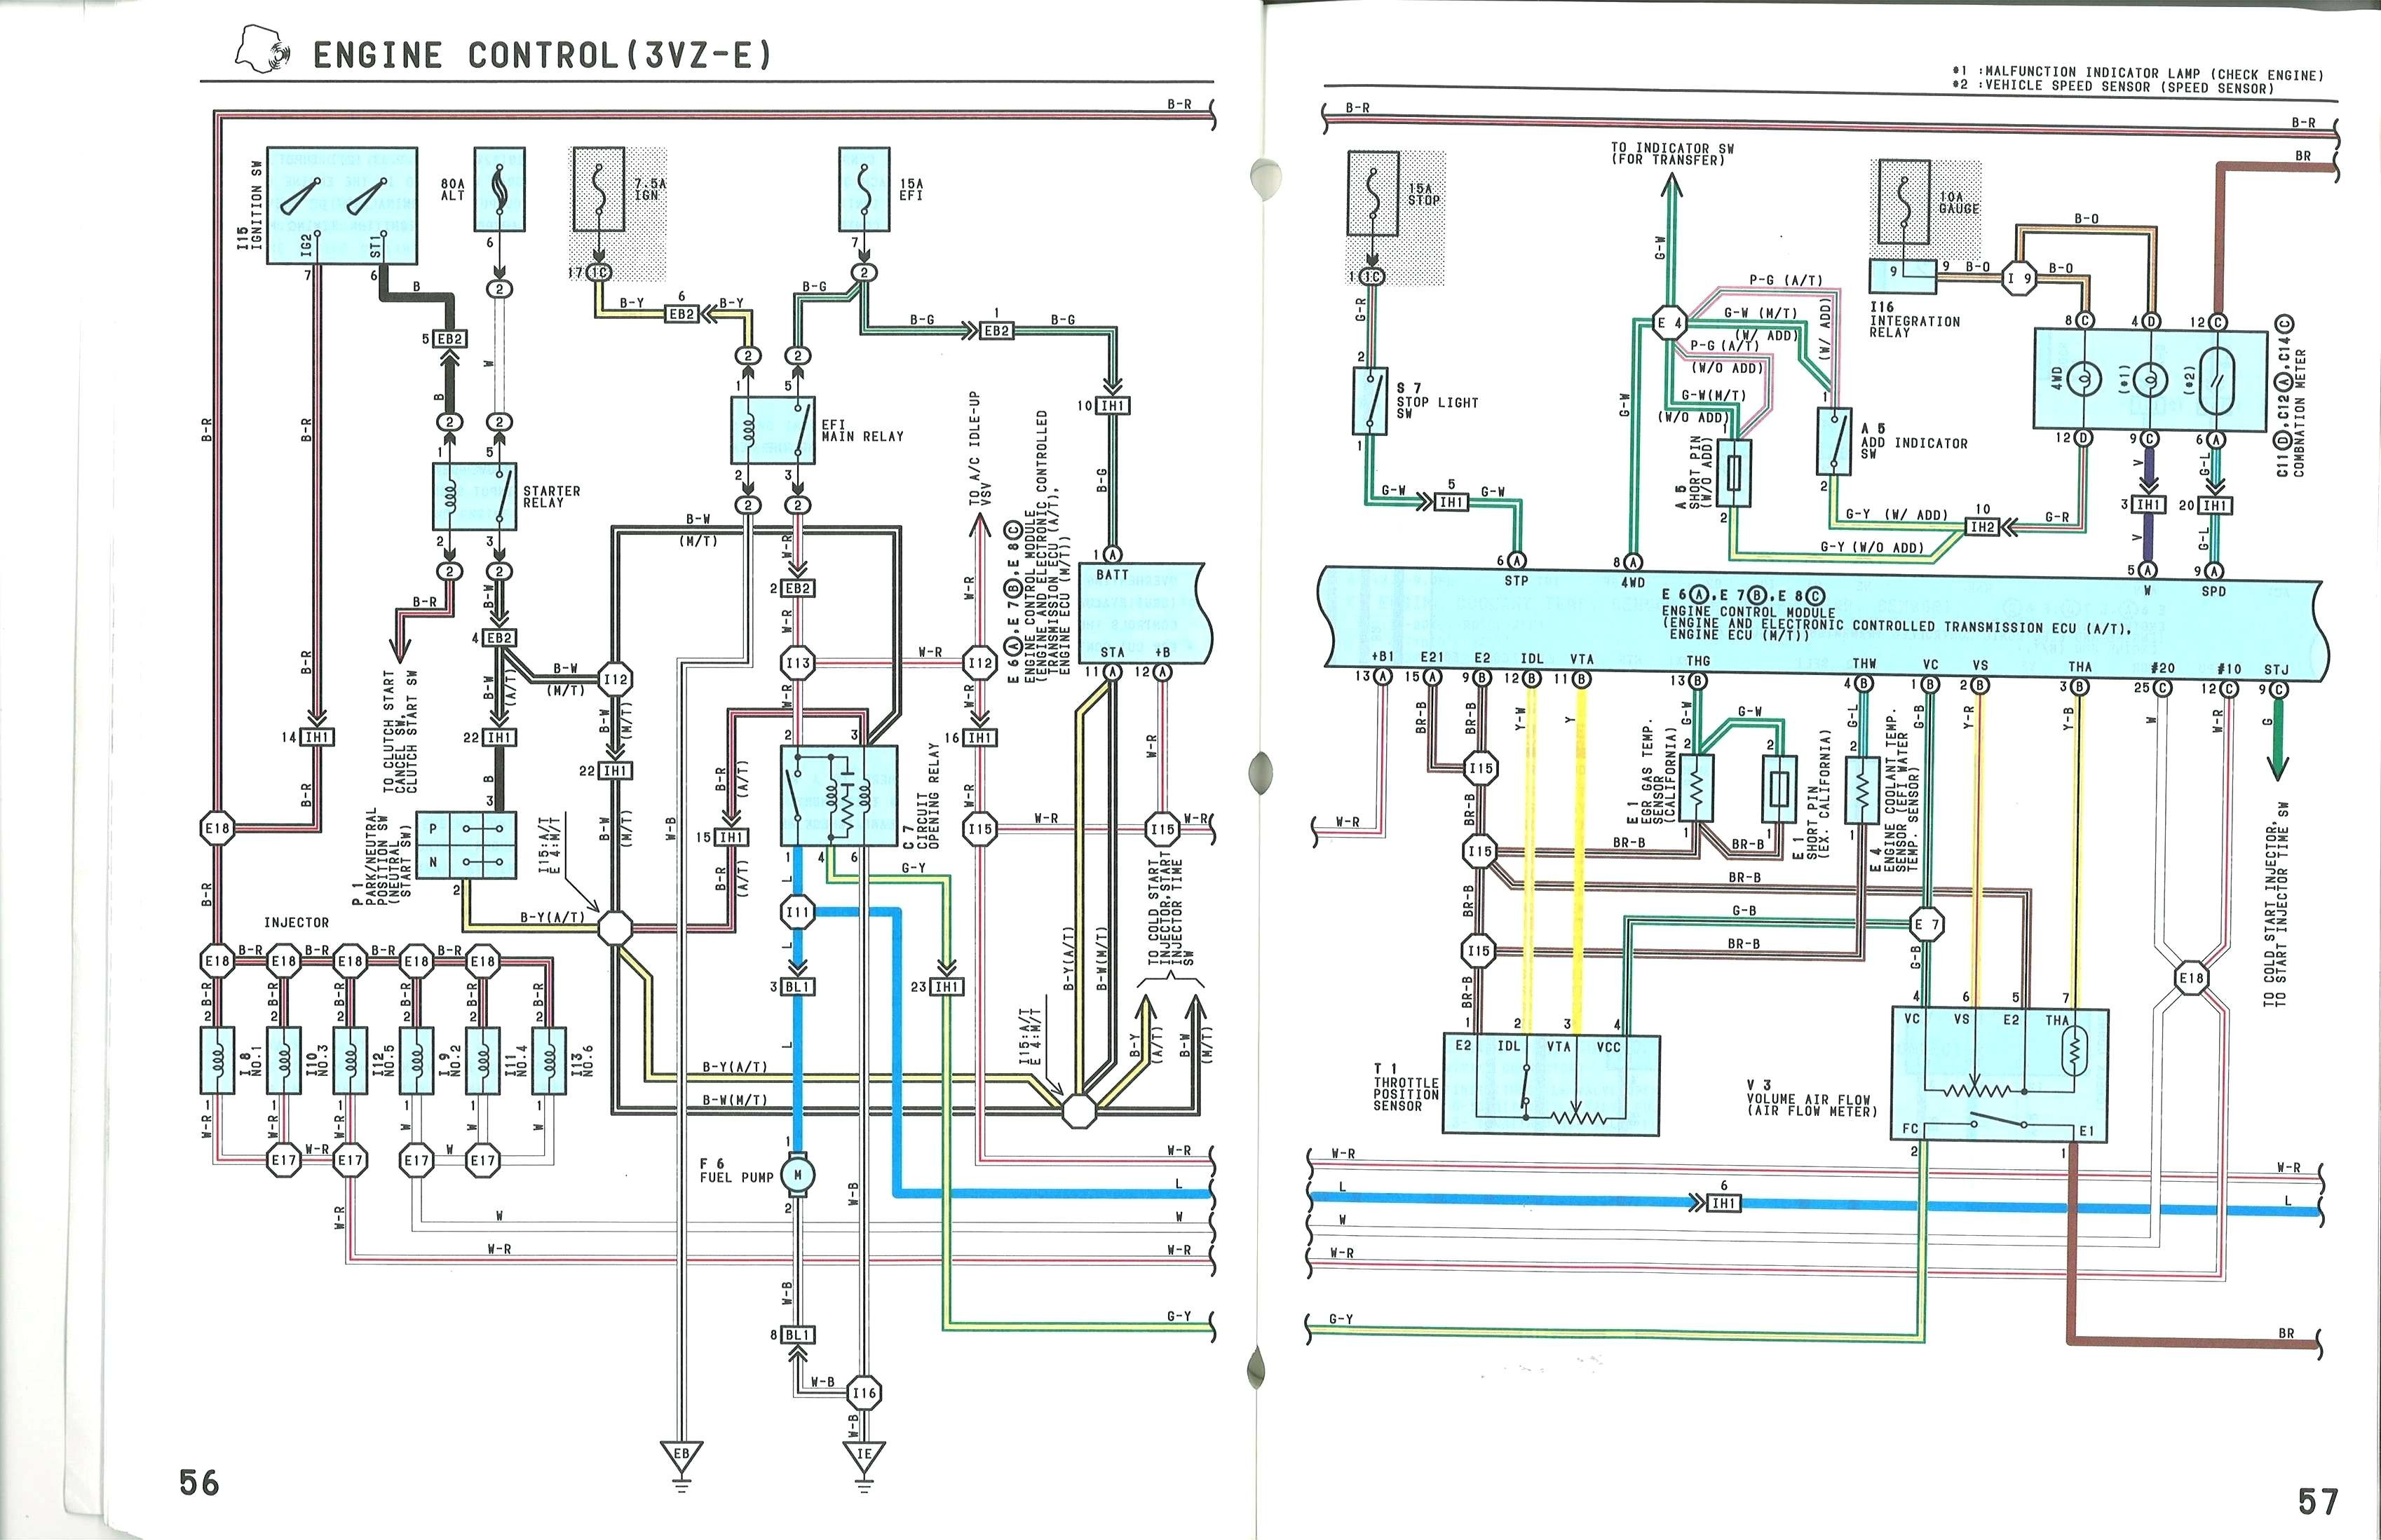 84 22r wiring diagram circuits symbols diagrams u2022 rh amdrums co uk toyota 22re wiring diagram 1990 toyota pickup wiring schematic